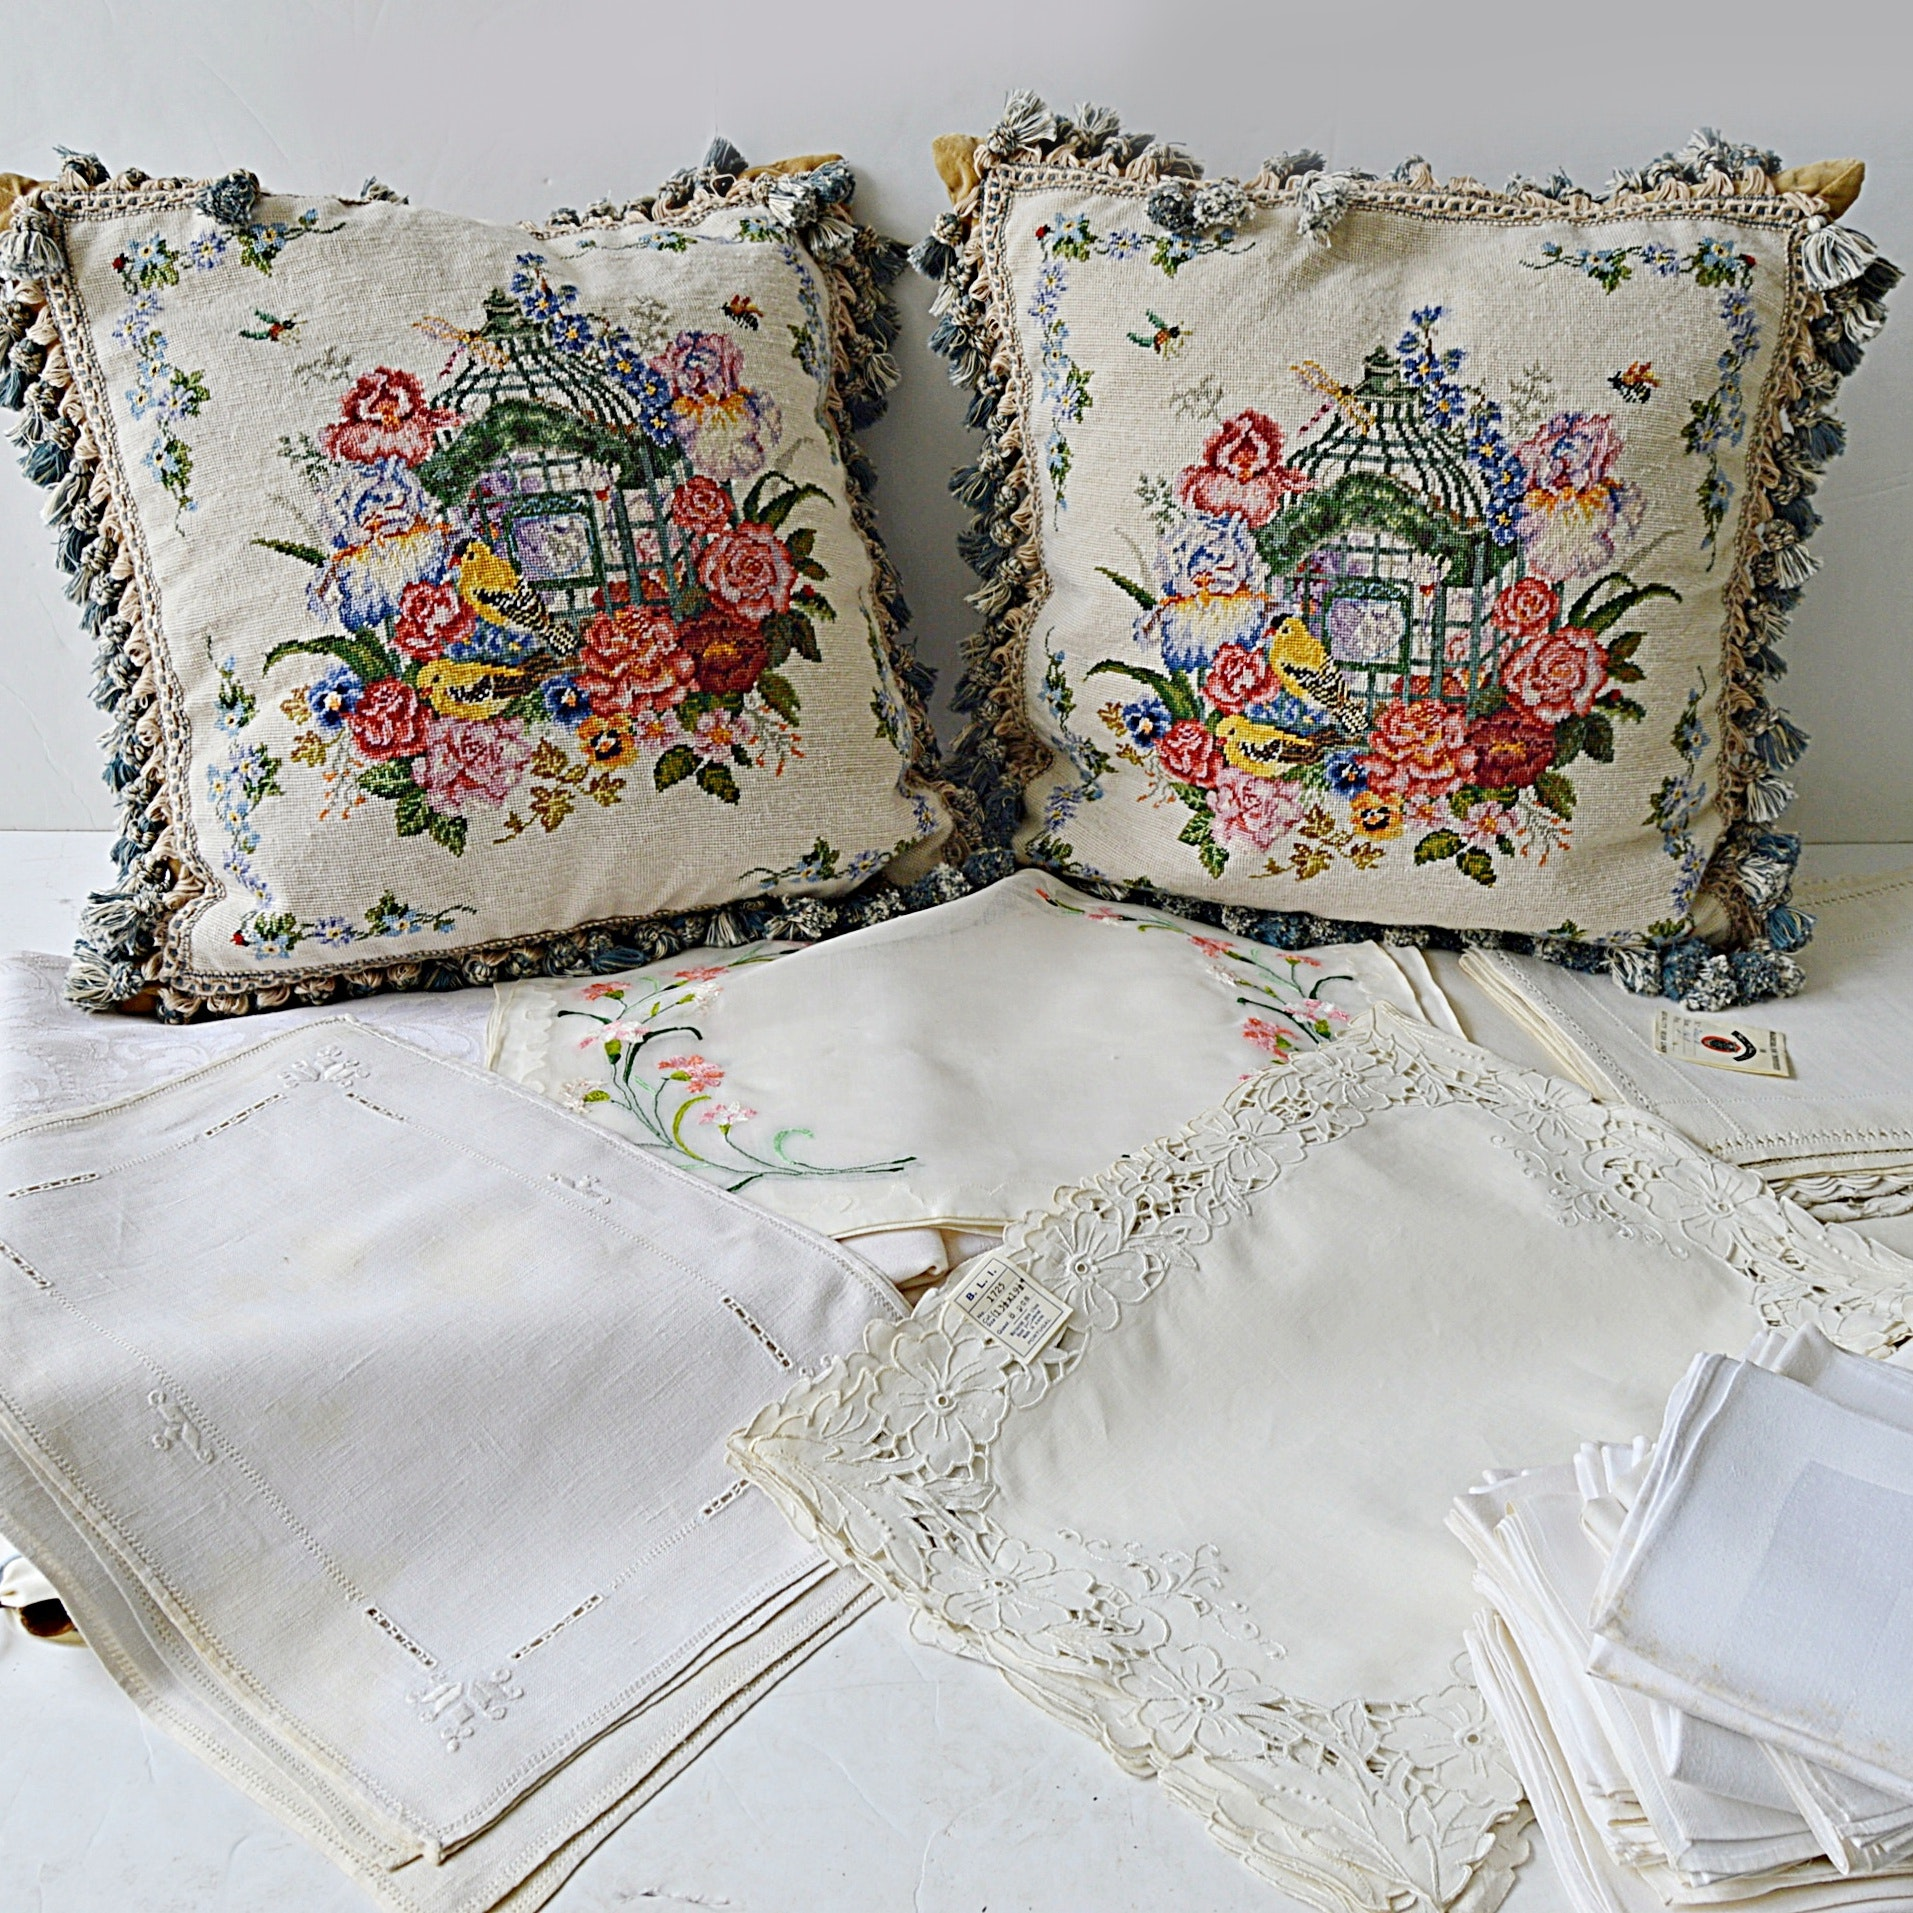 Vintage Table Linens and Pair of Needlepoint Pillows